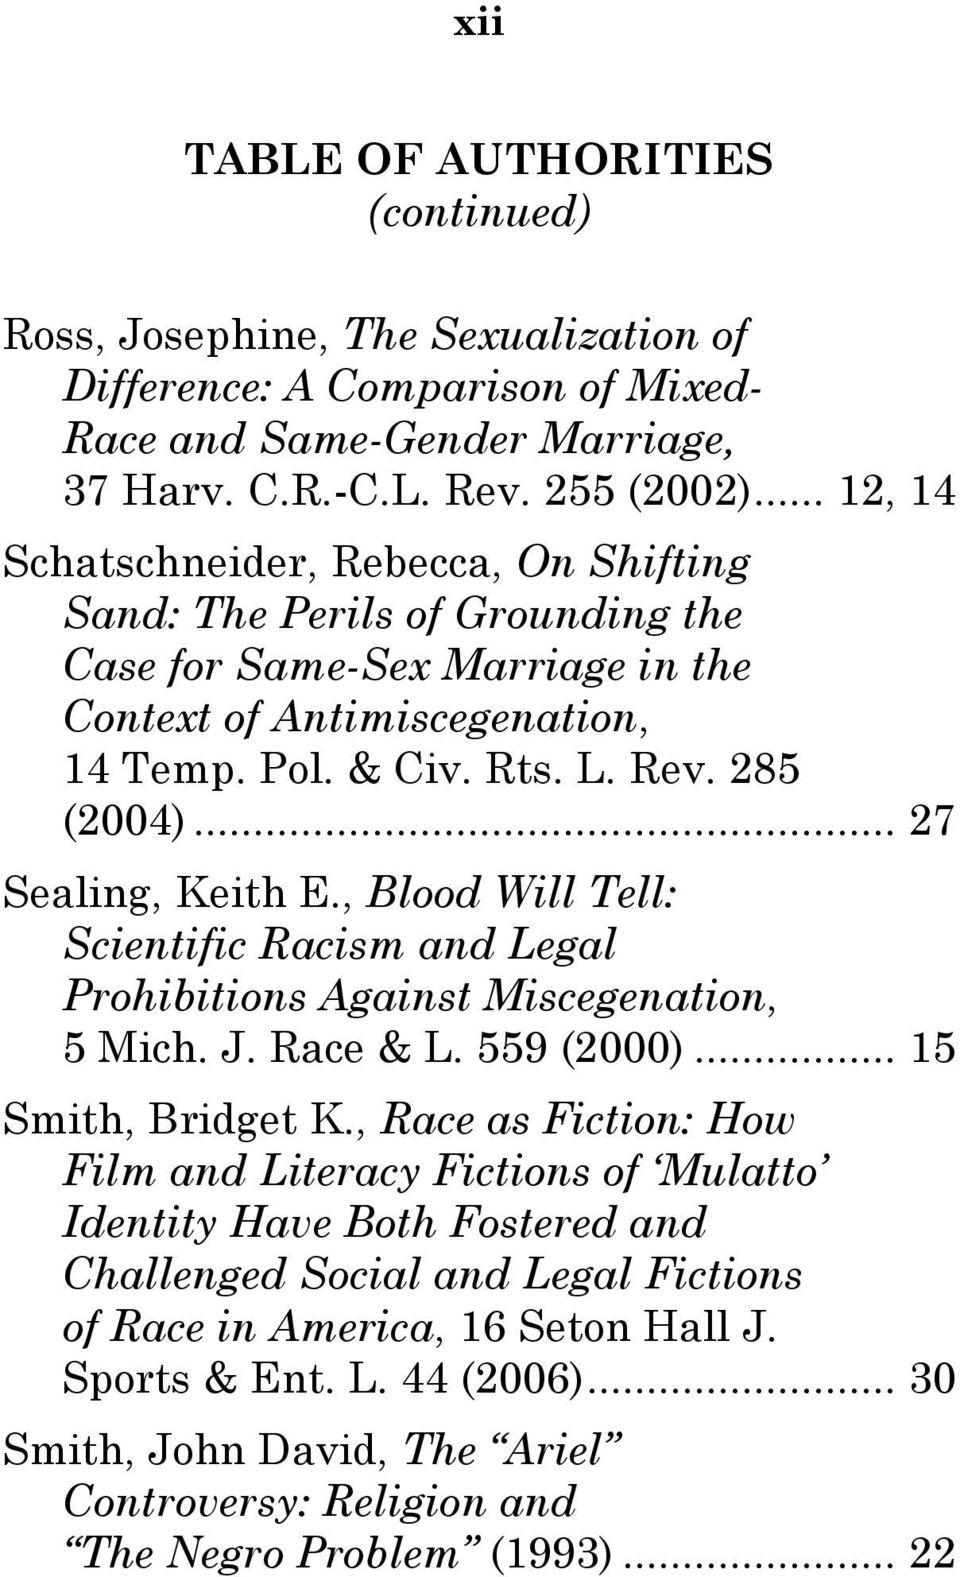 .. 27 Sealing, Keith E., Blood Will Tell: Scientific Racism and Legal Prohibitions Against Miscegenation, 5 Mich. J. Race & L. 559 (2000)... 15 Smith, Bridget K.